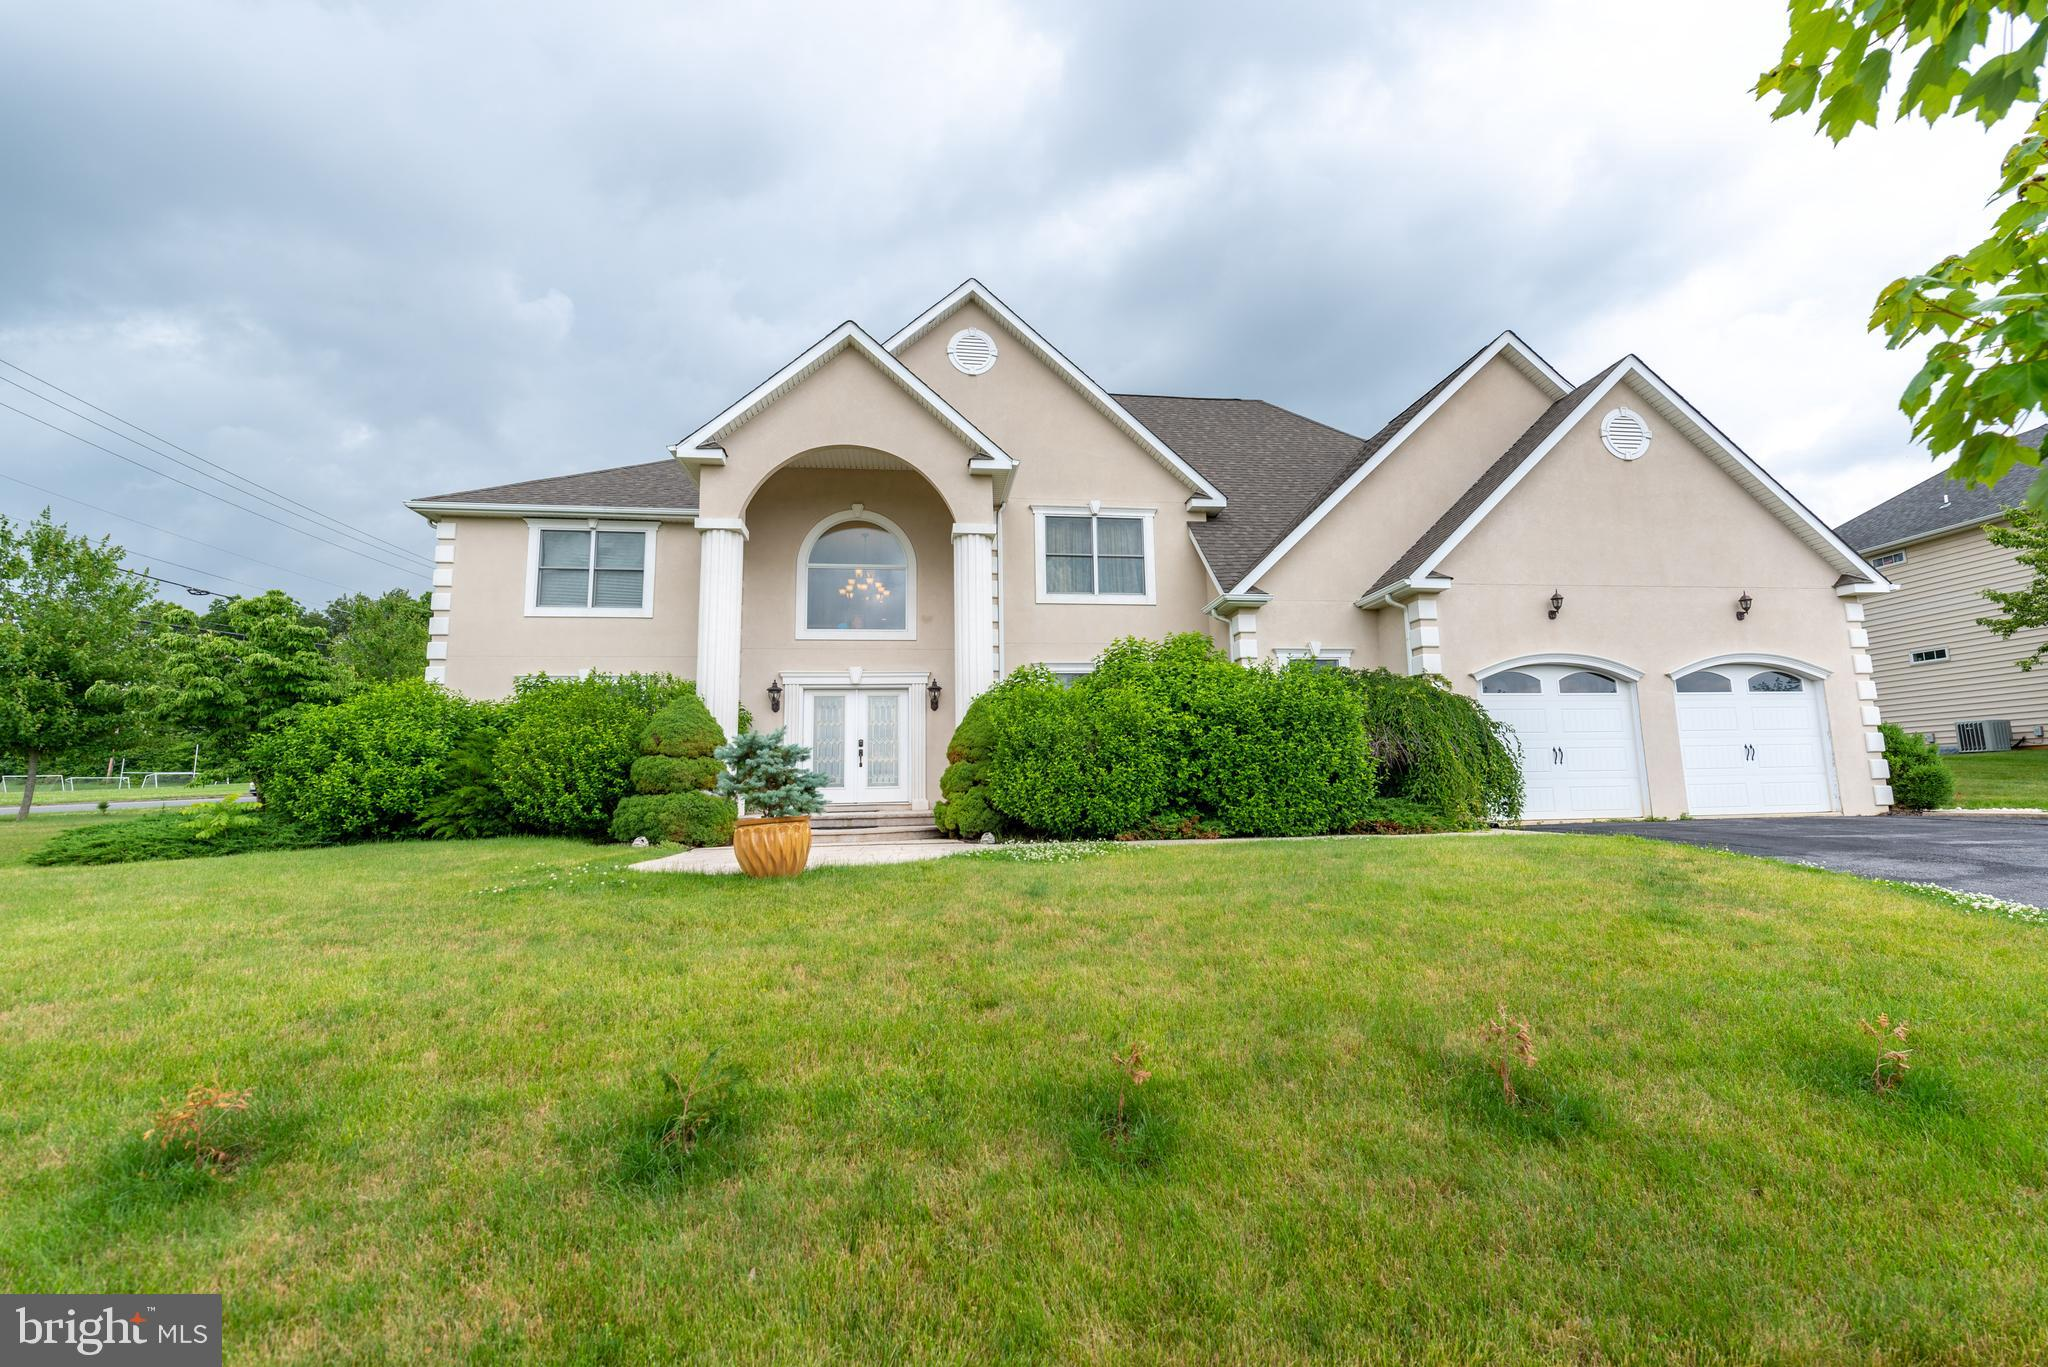 3785 AMHERST ROAD, ALLENTOWN, PA 18104